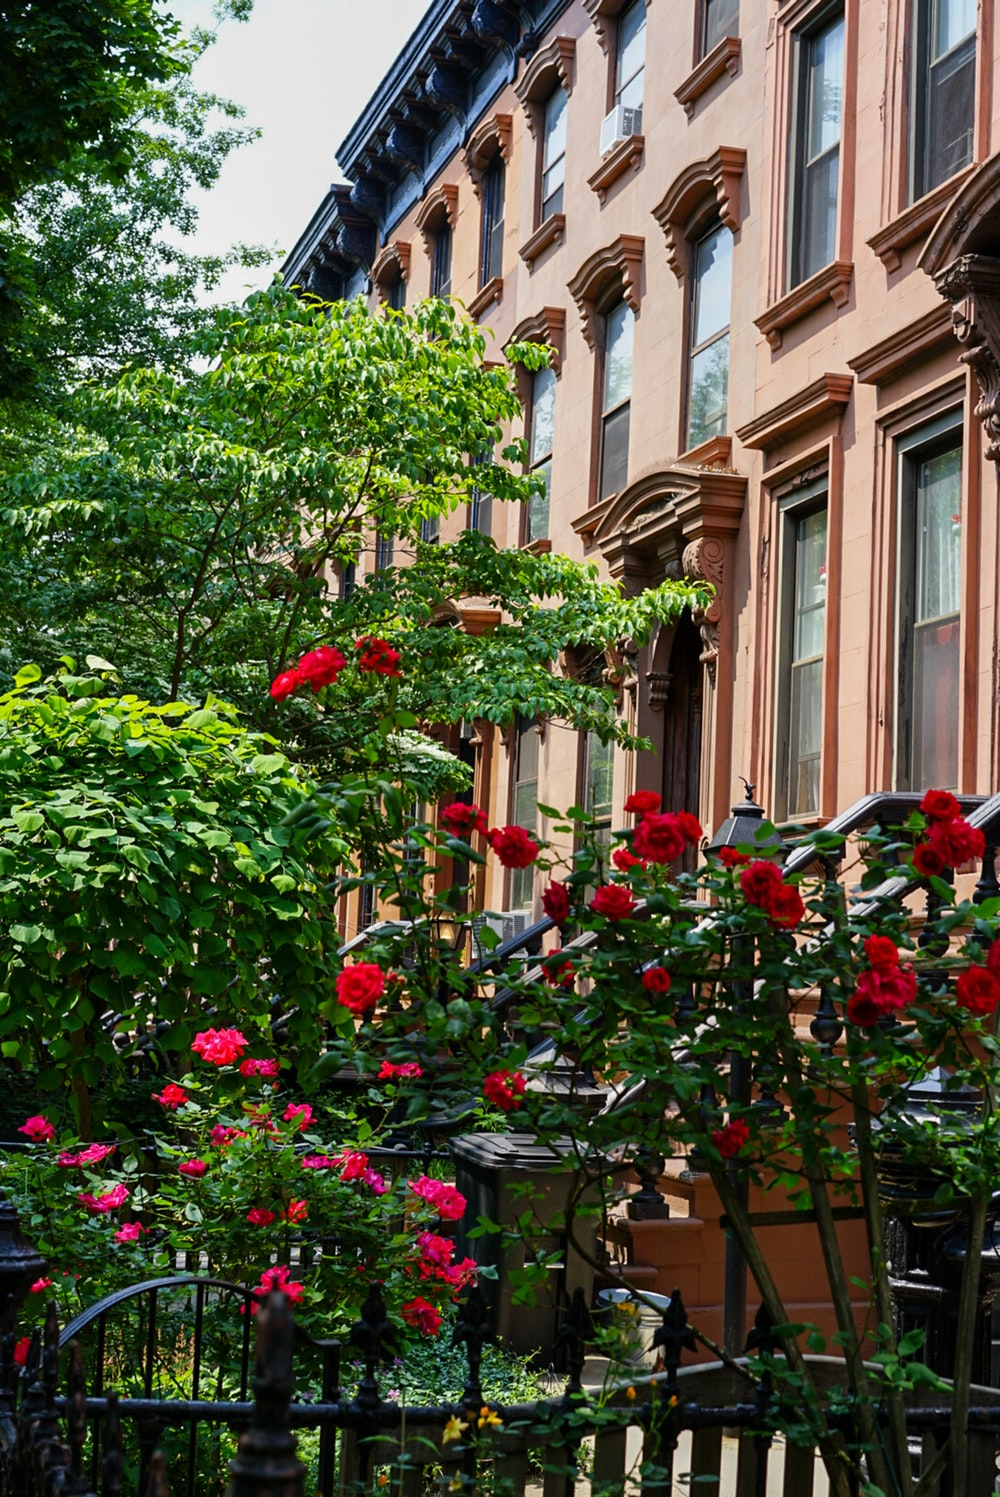 red flowers near building